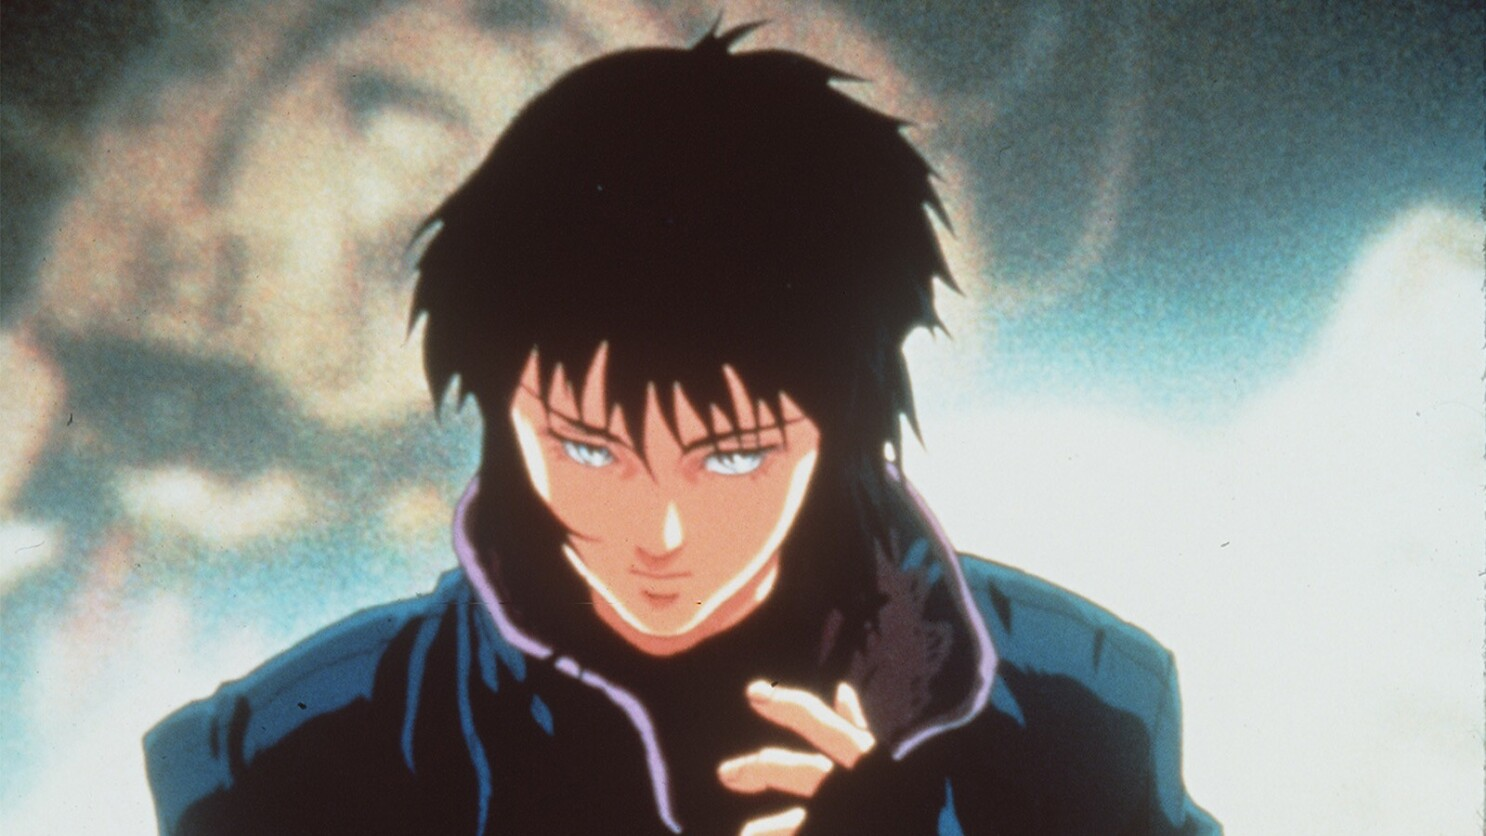 The Original Ghost In The Shell Was A Watershed Film In Animation History Los Angeles Times